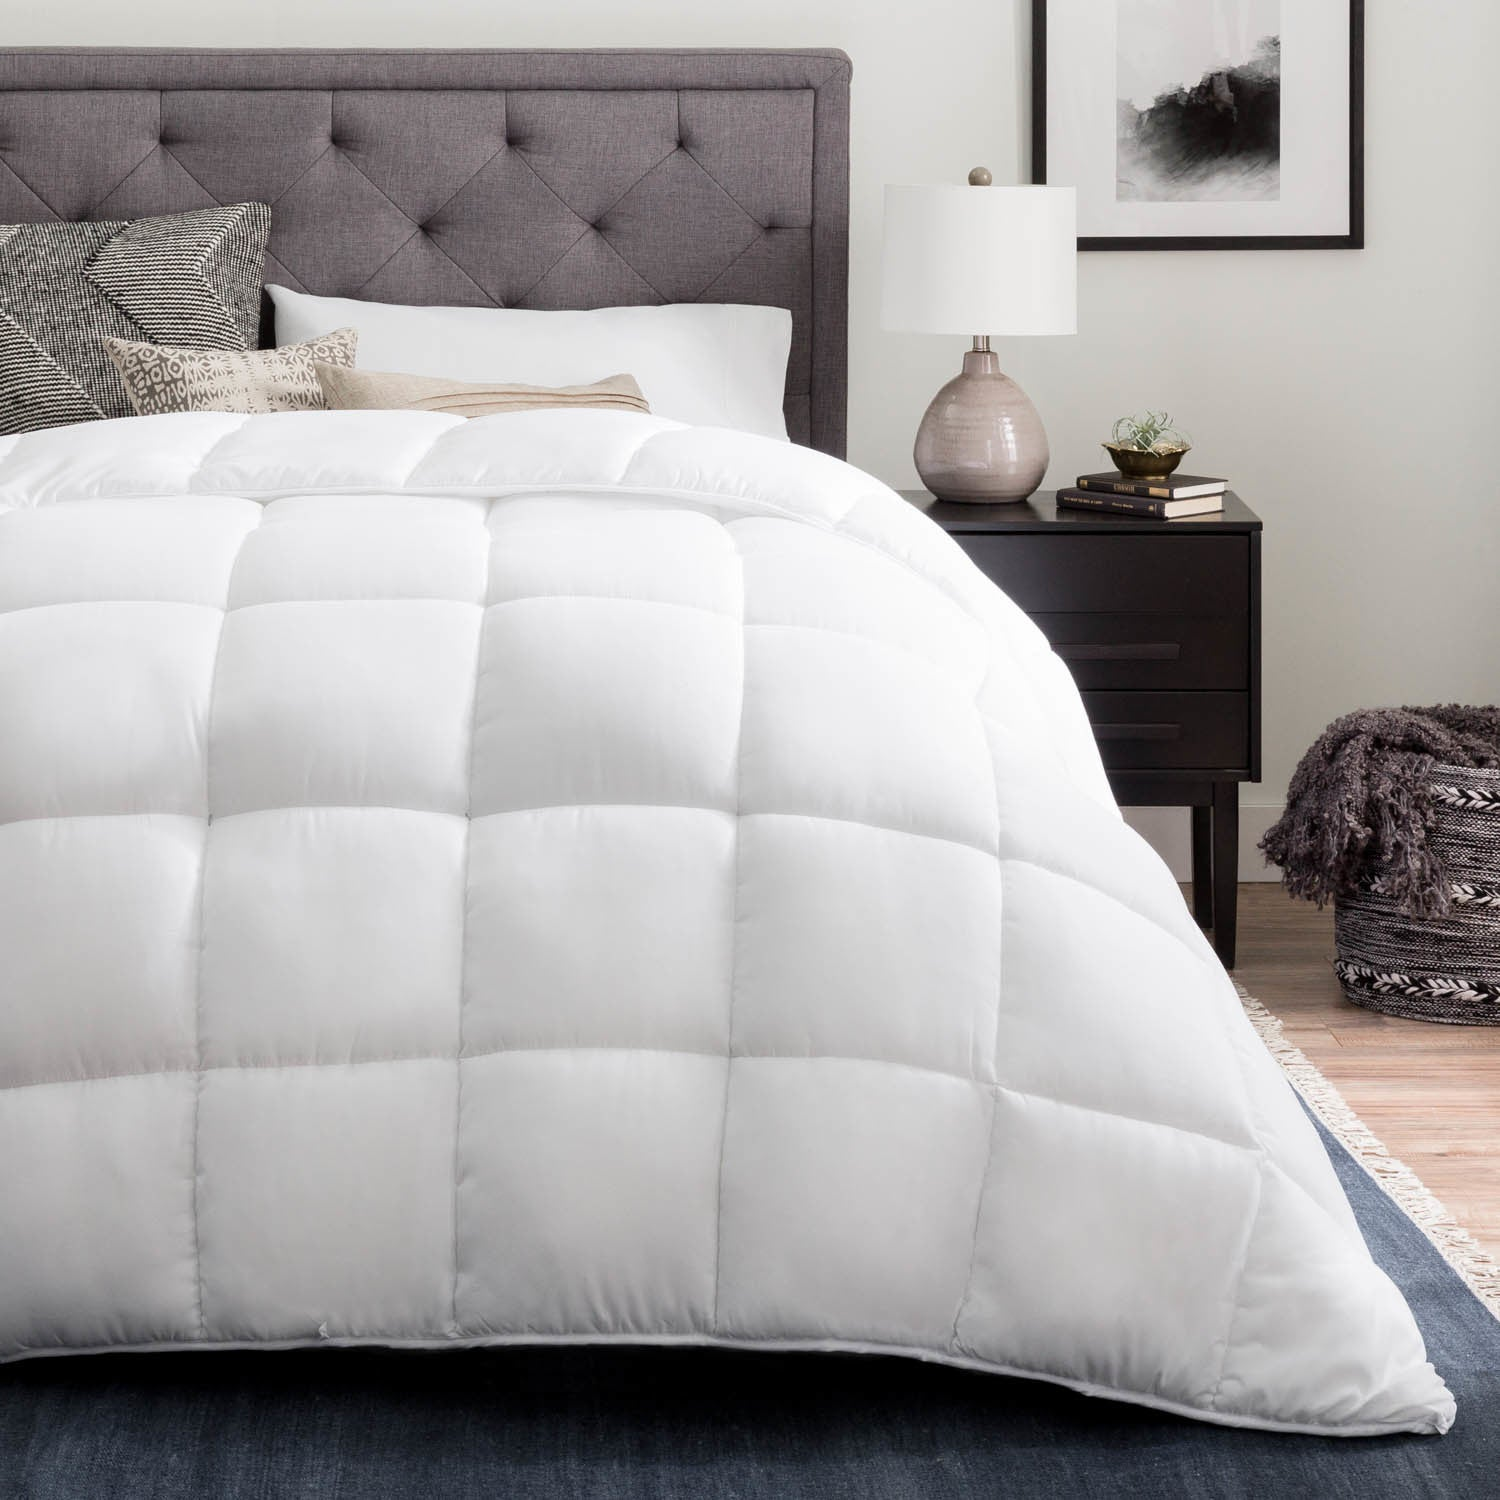 inserts joss main down duvet comforter alternative comforters save bedding